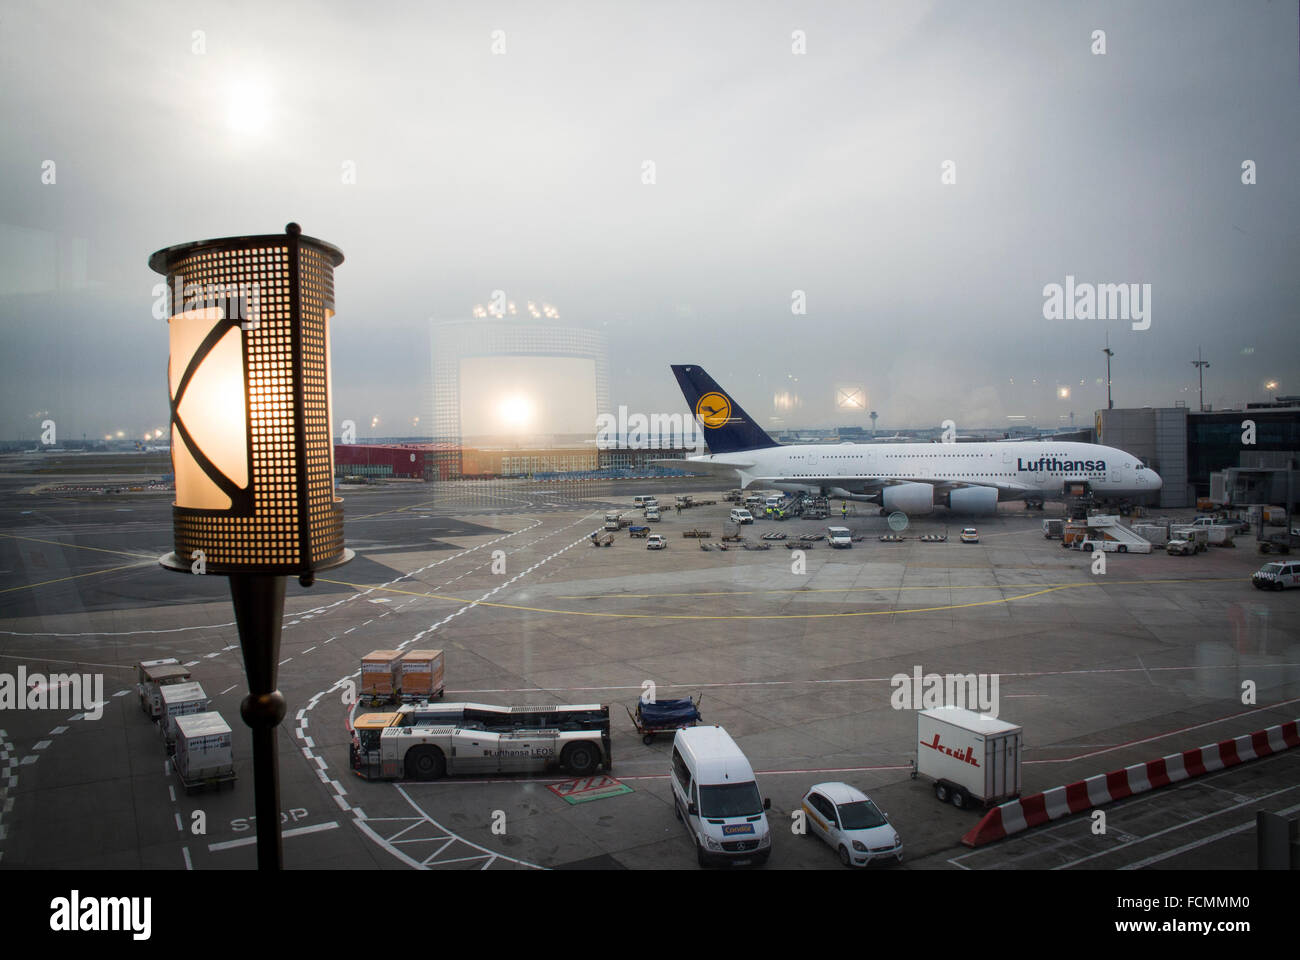 View from a departure lounge at Frankfurt Airport, Germany. - Stock Image